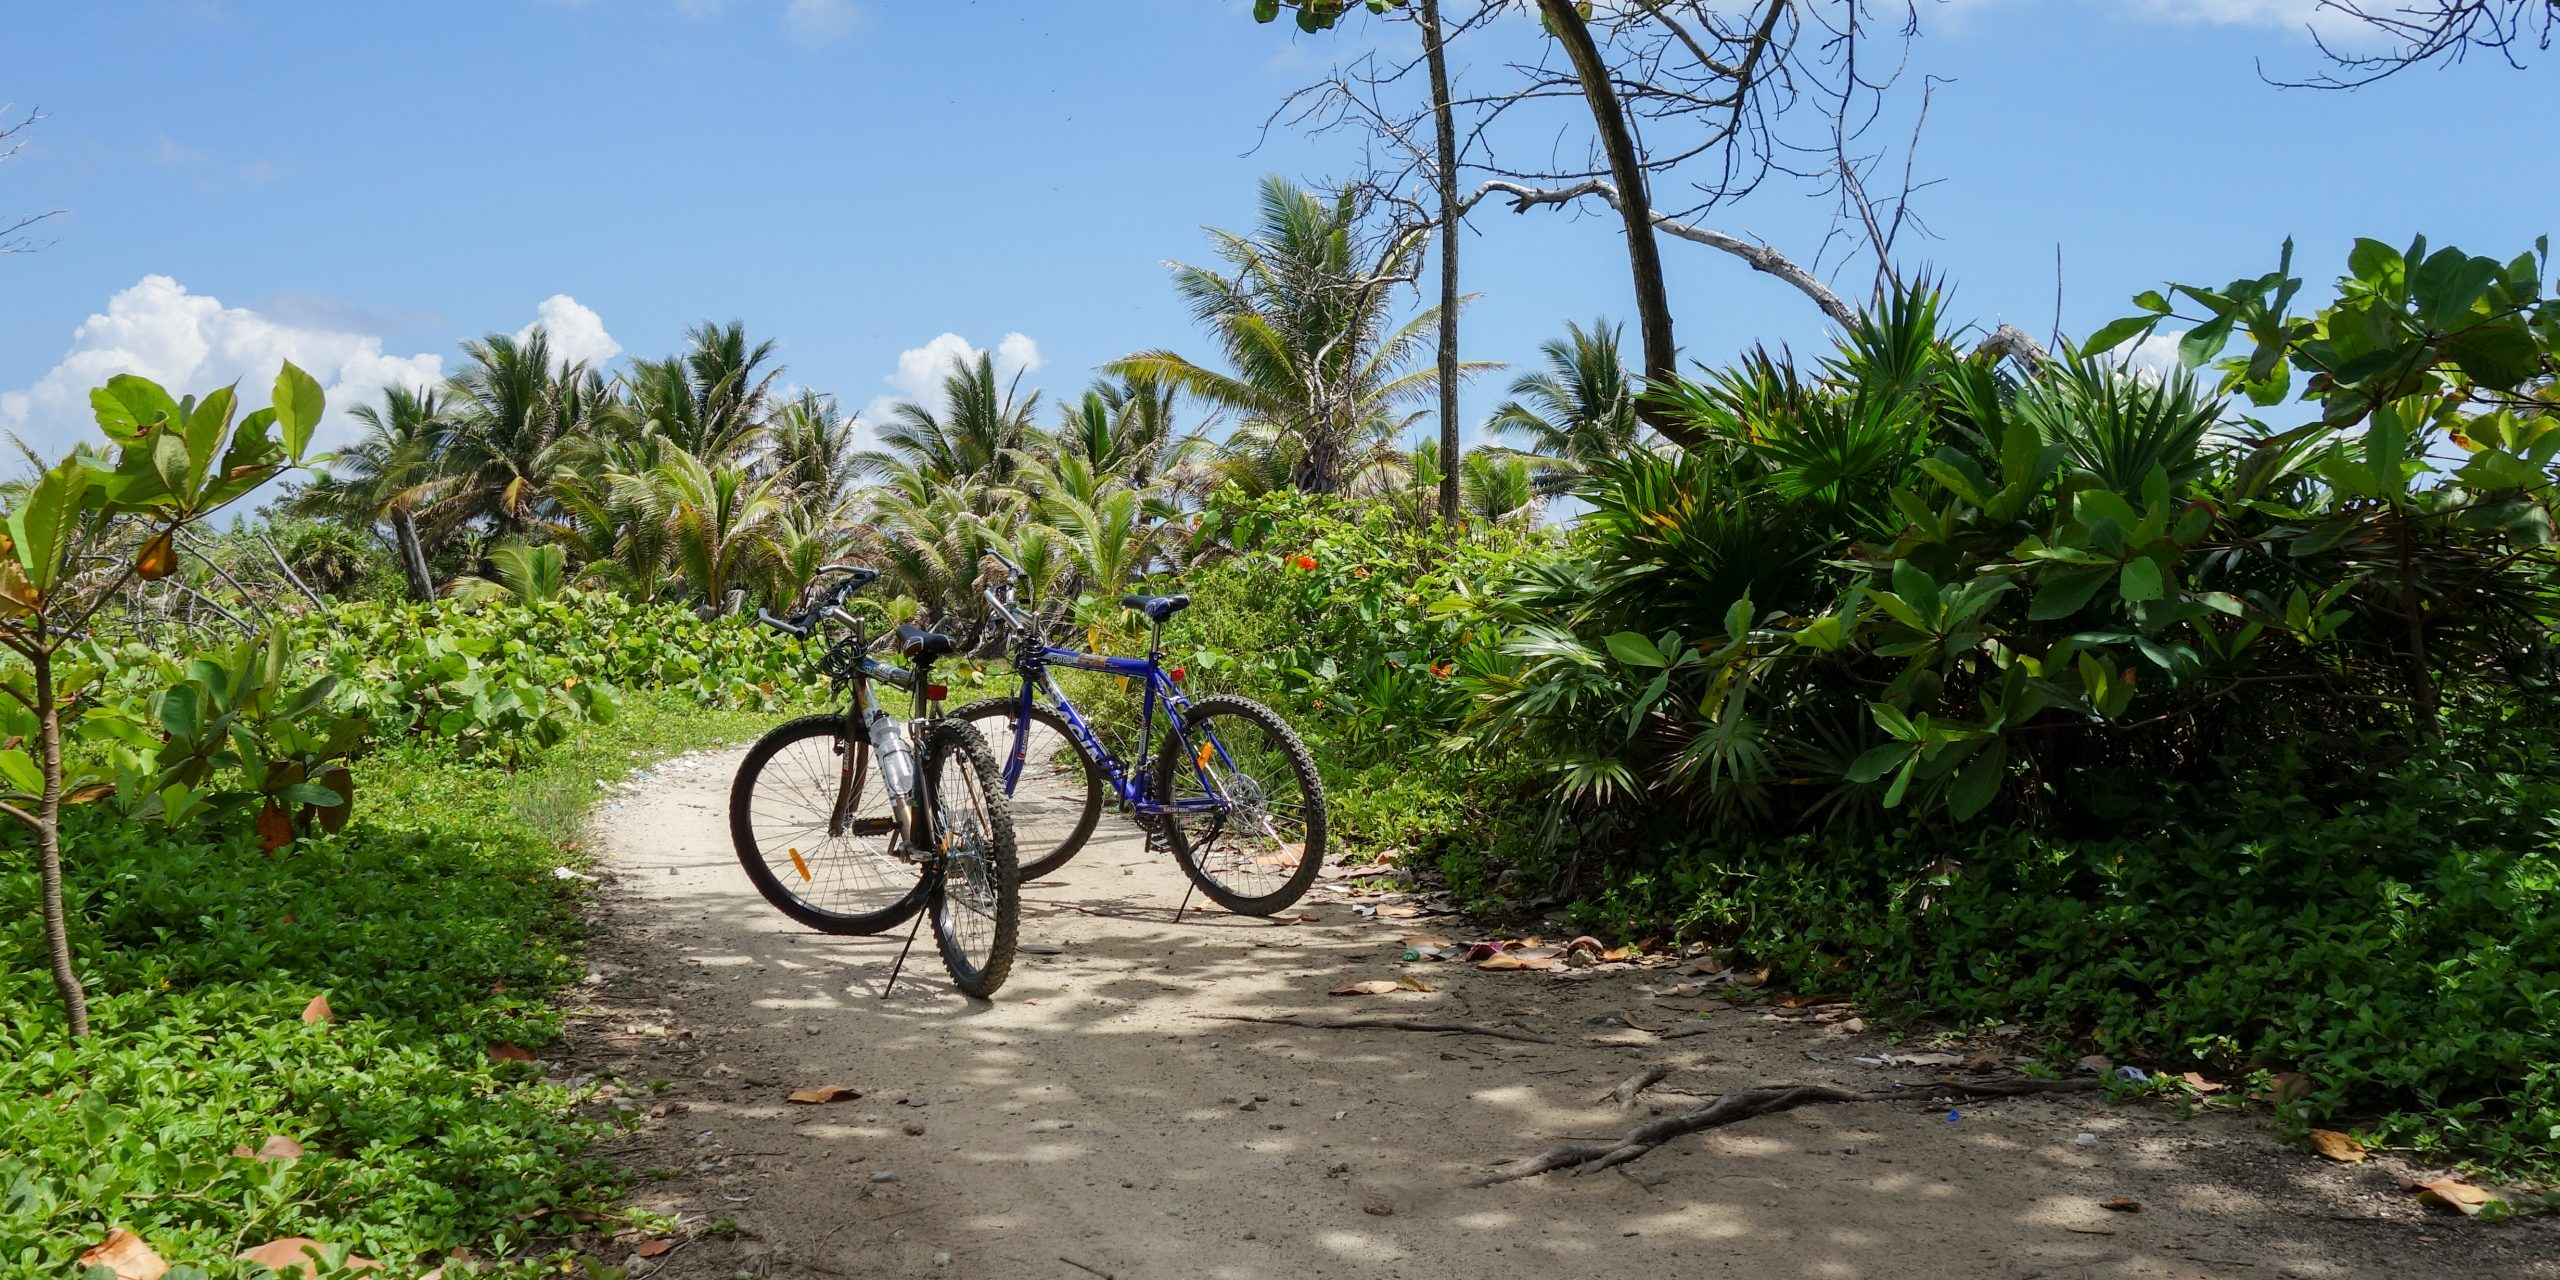 Two bikes in Utila, Honduras